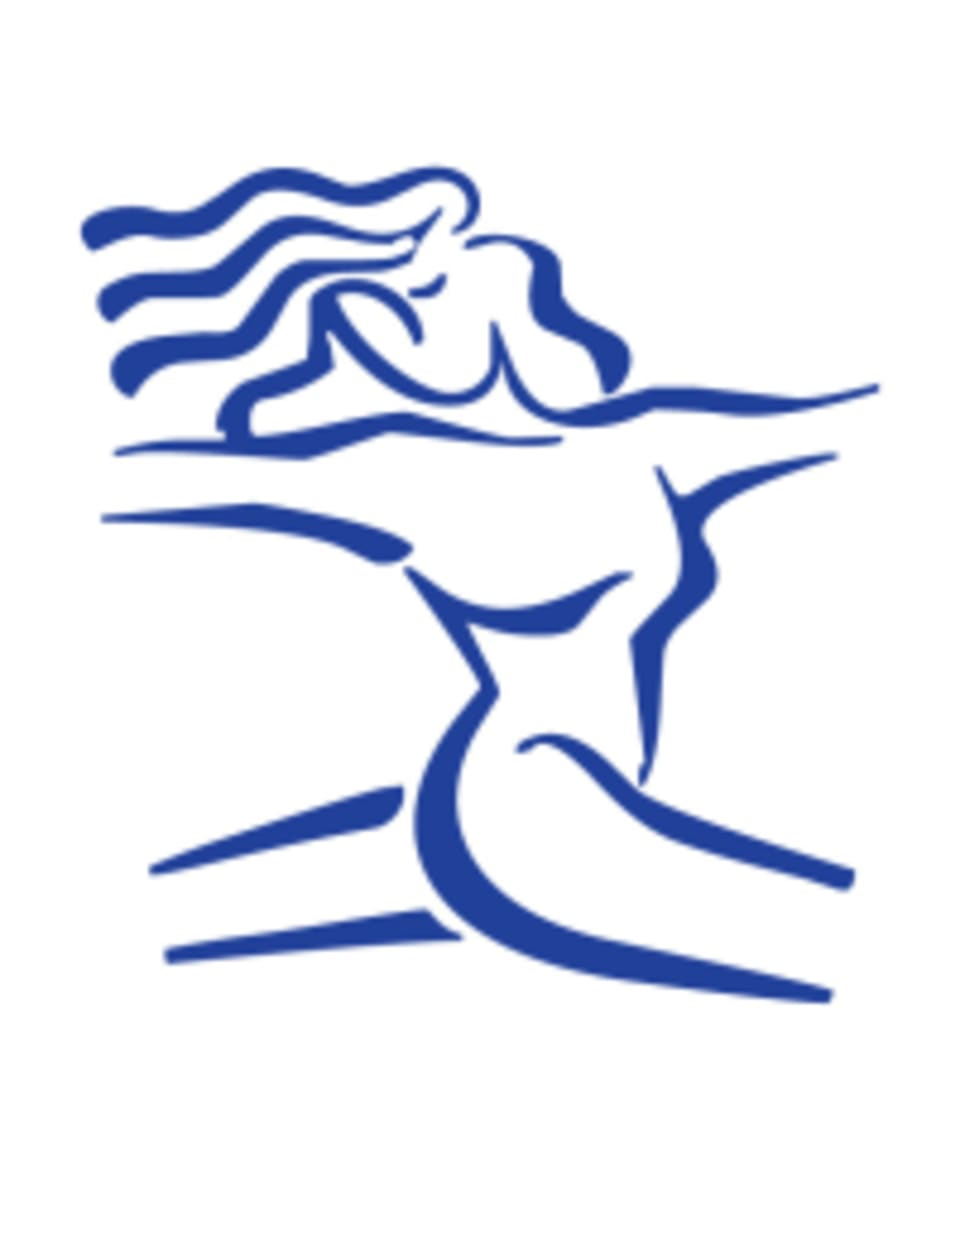 The Women's Club logo